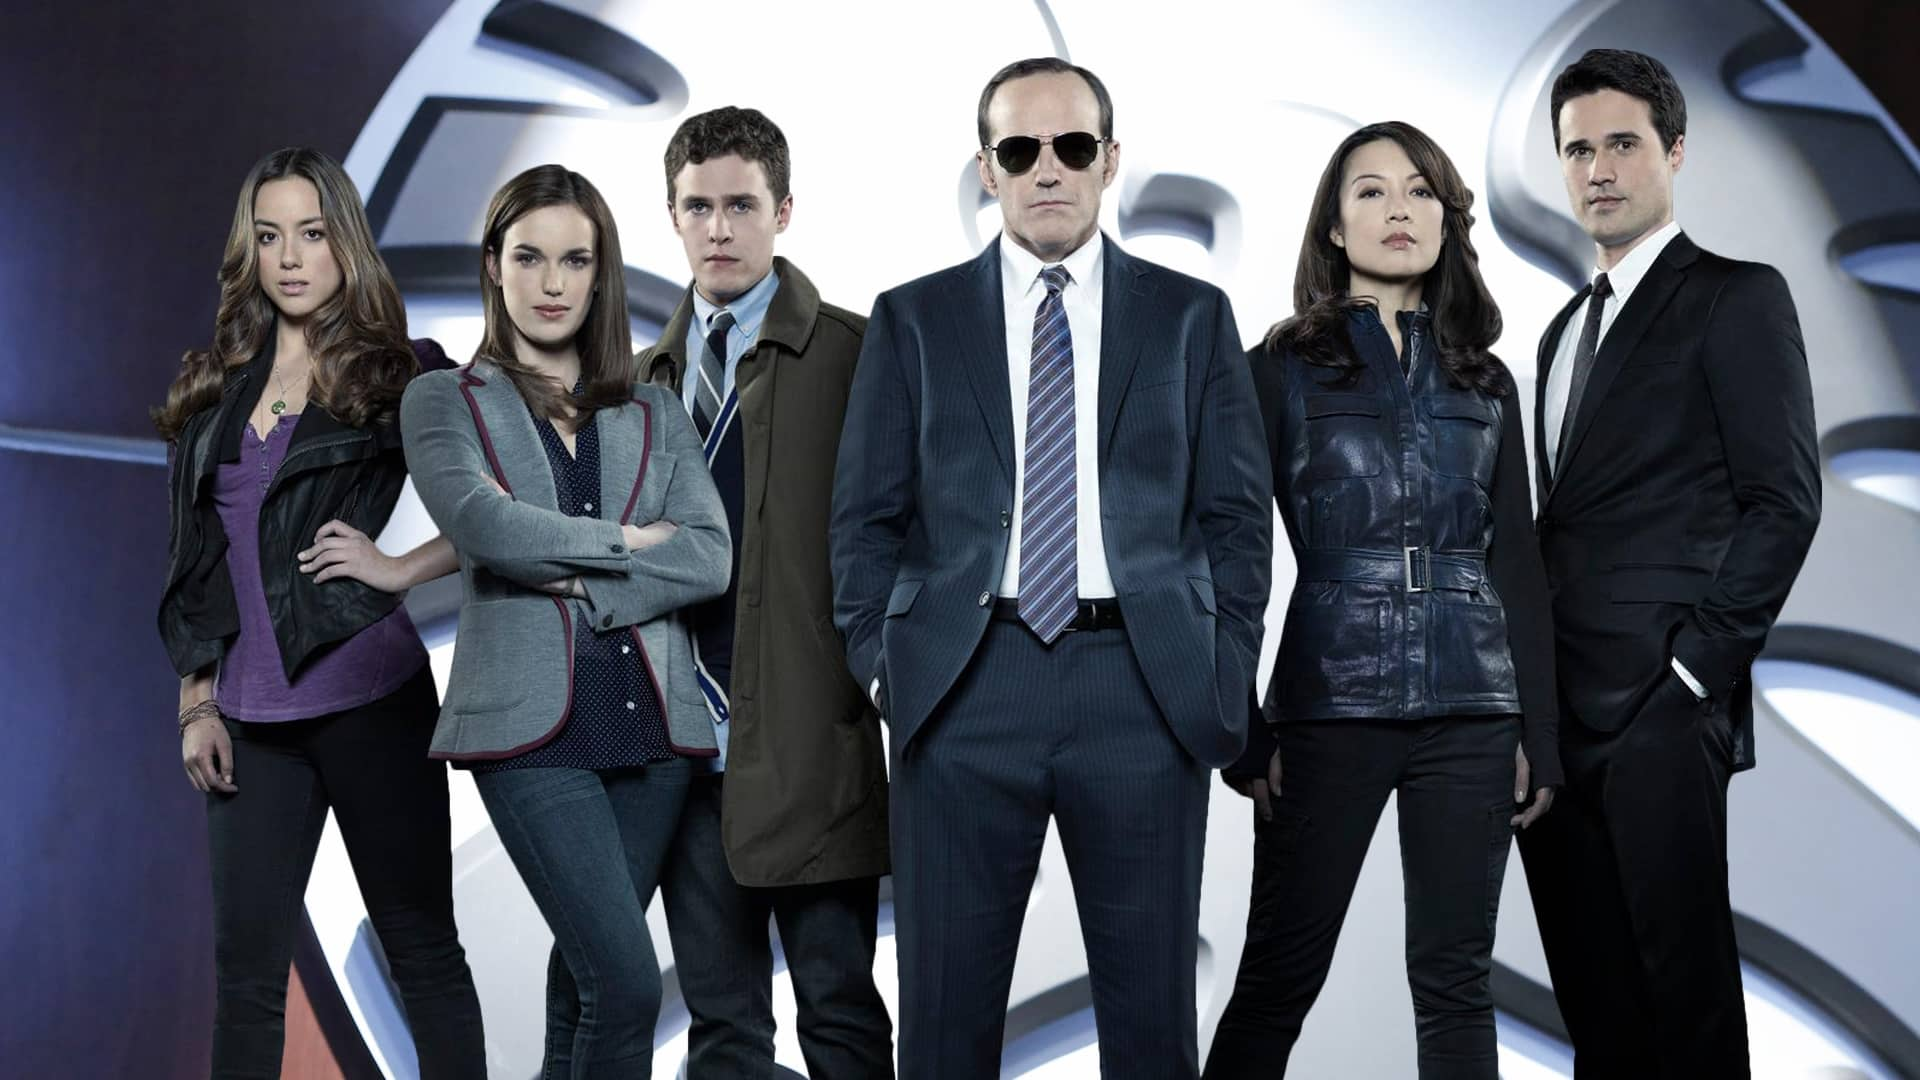 ABC, Marvel Agents of SHIELD, via Getty Images